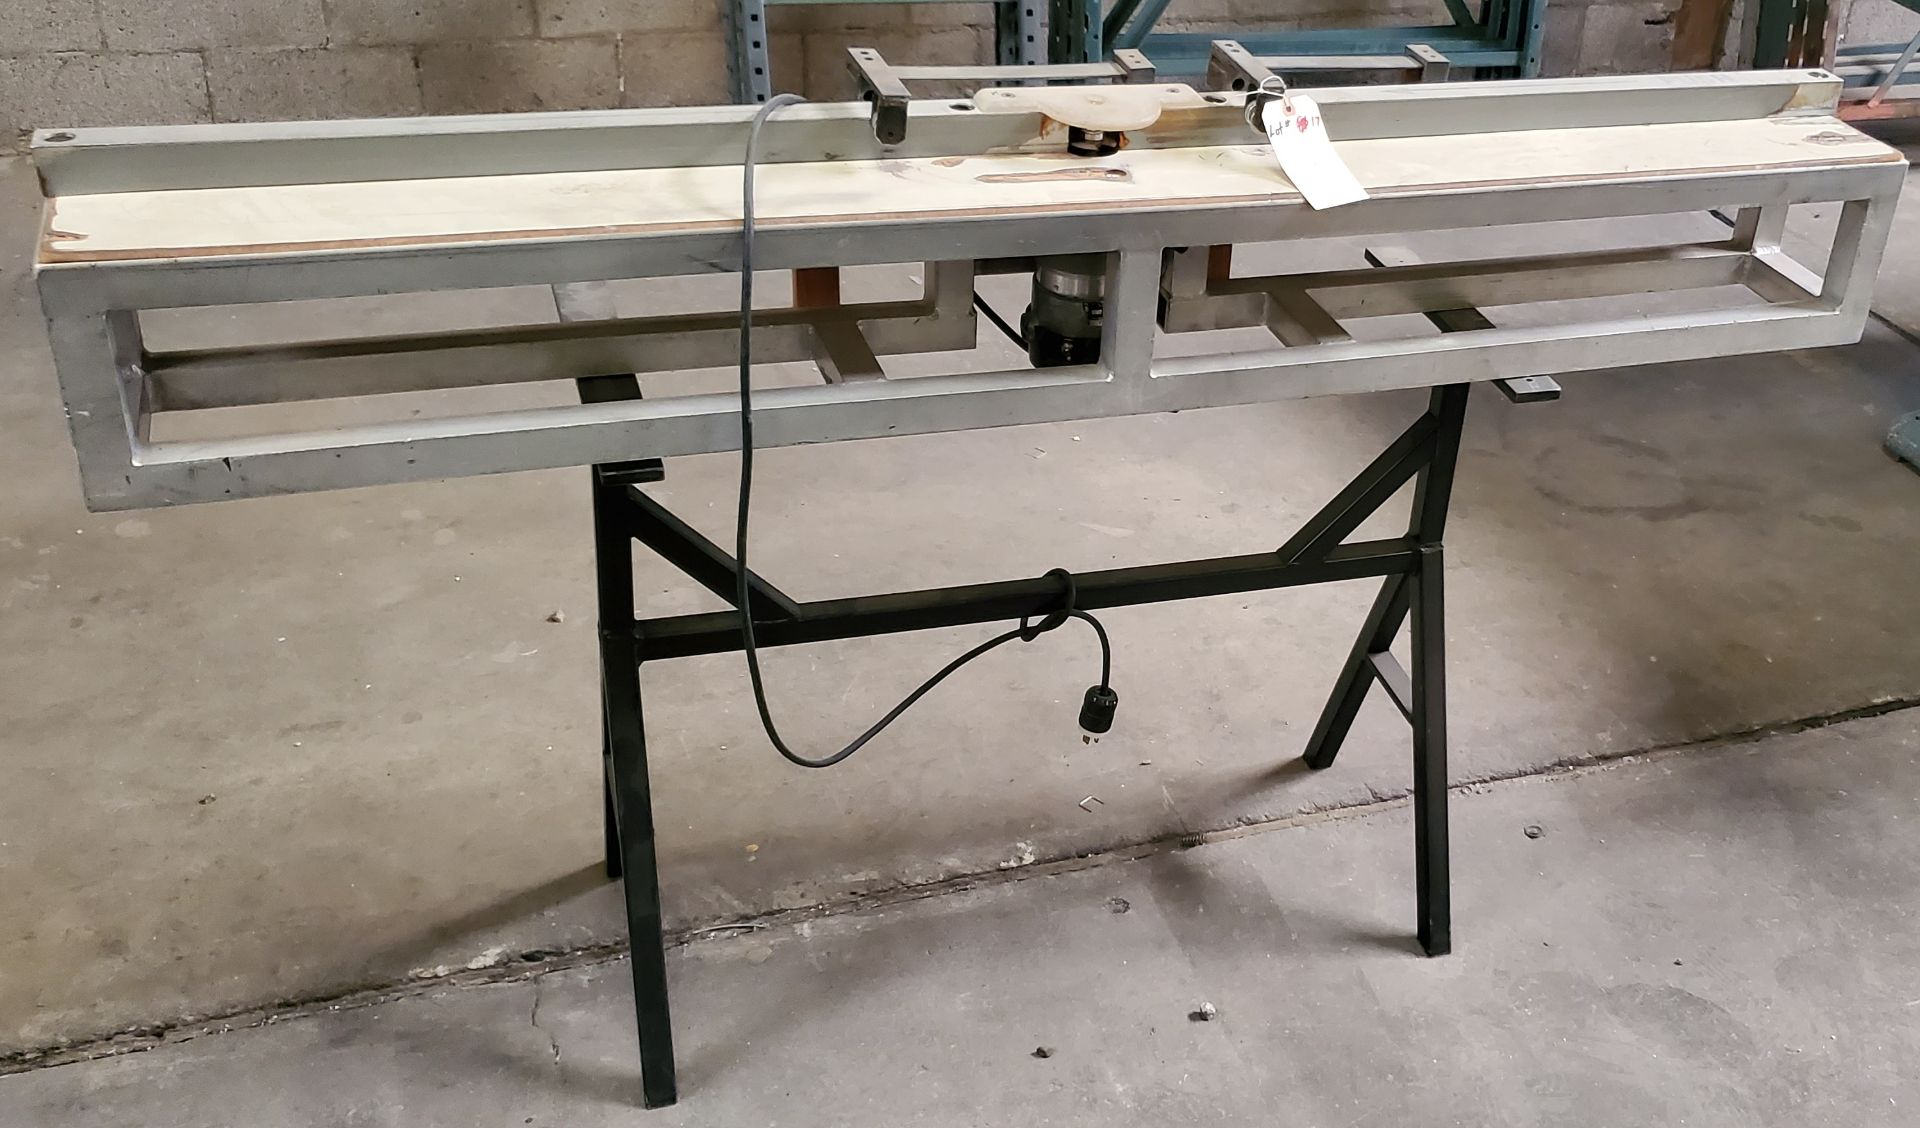 Lot 17 - Porter Cable 1-1/2 HP Router with Table, 115 Volts